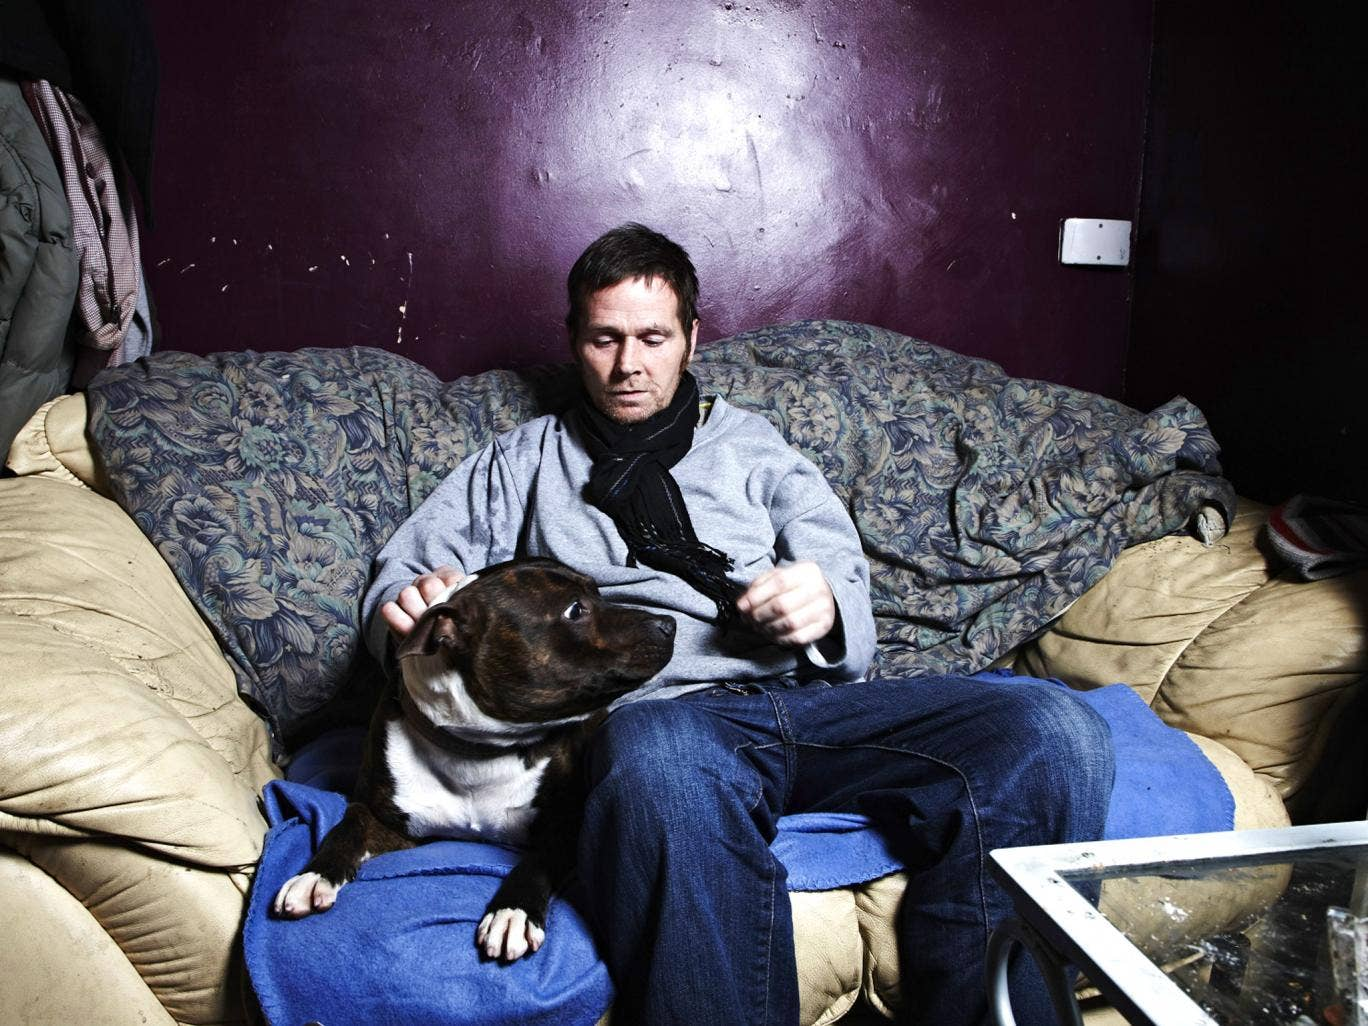 Fungi and his dog in Channel 4's Benefits Street